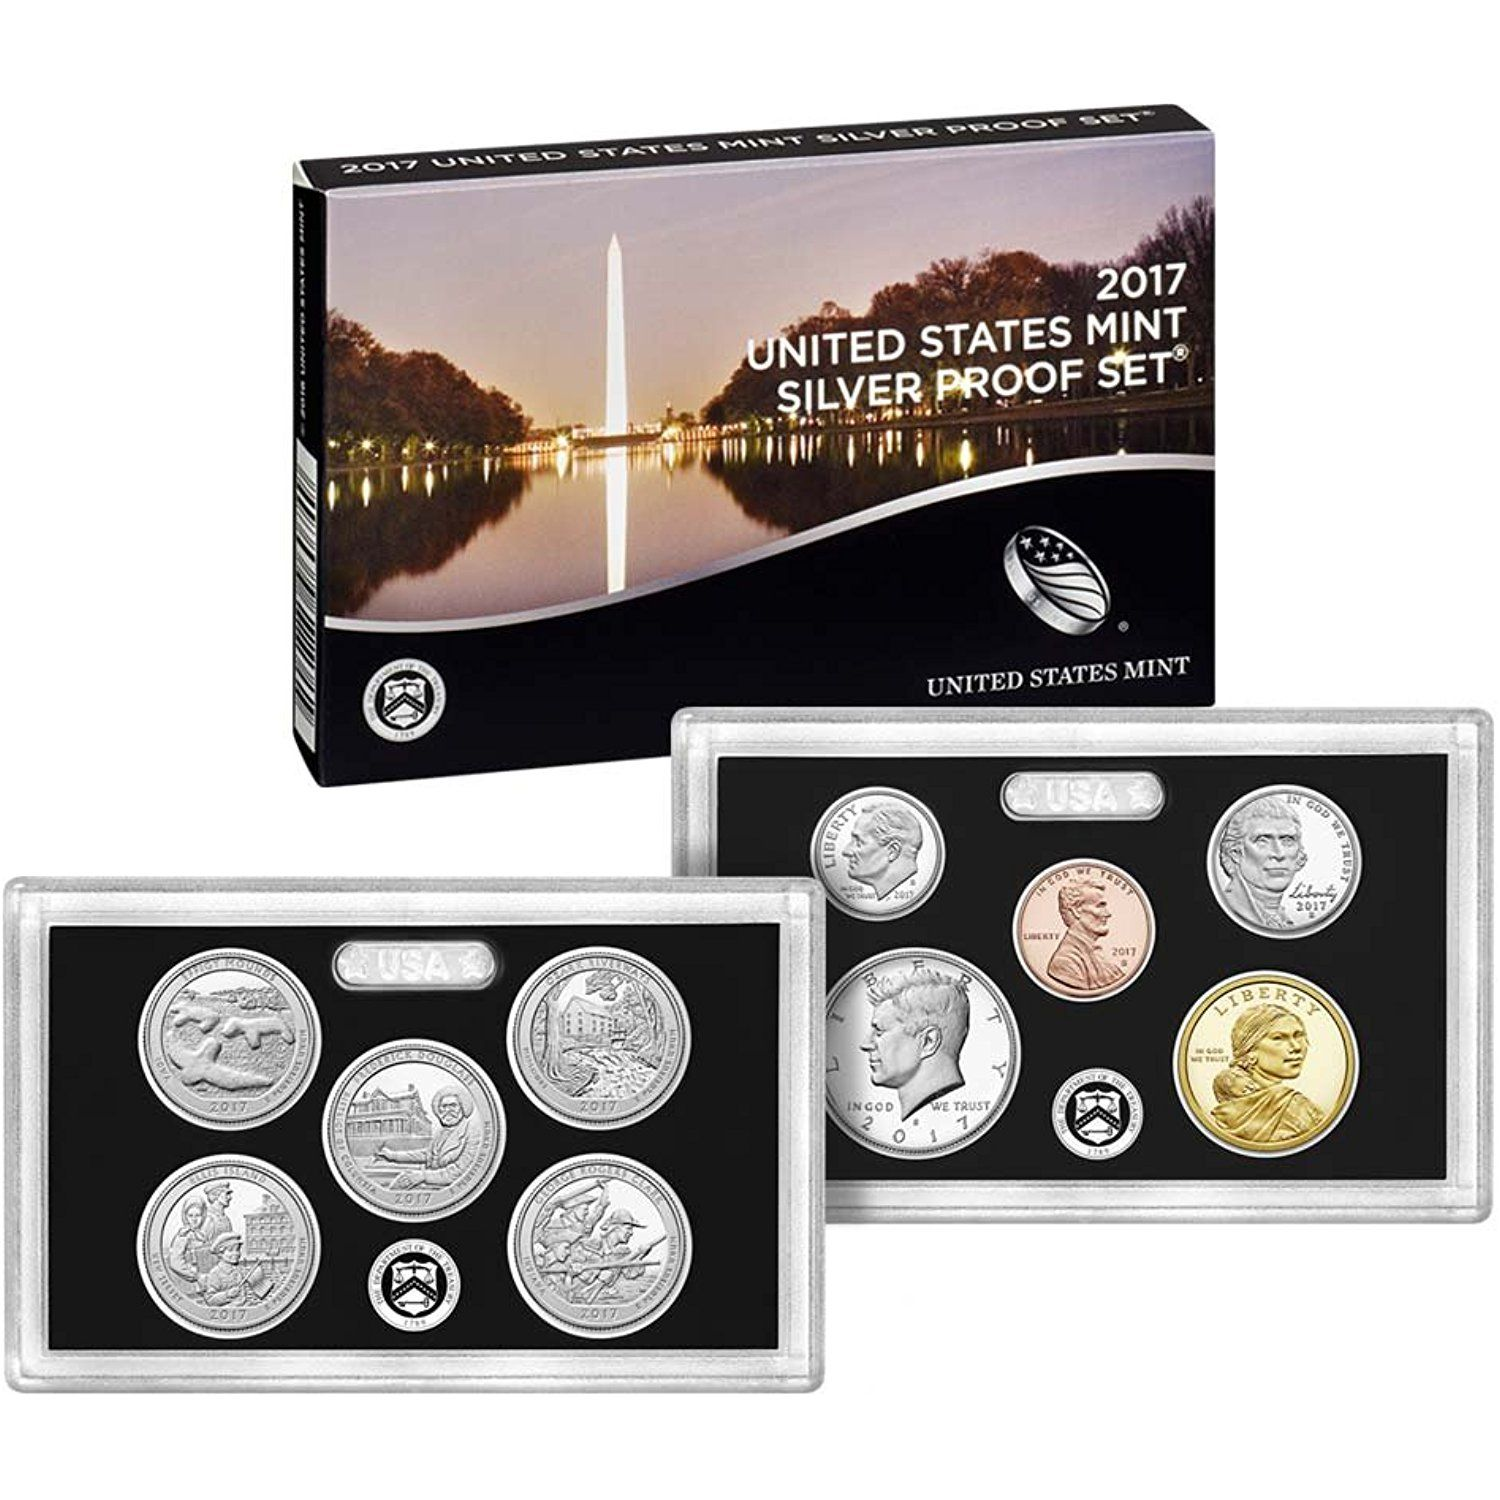 2017 S Silver Proof Set 2017 Silver Proof Set 10 Coins Complete With Box And Coa Proof Check Out The Image By Visitin Coin Set Proof Coins Coin Shop